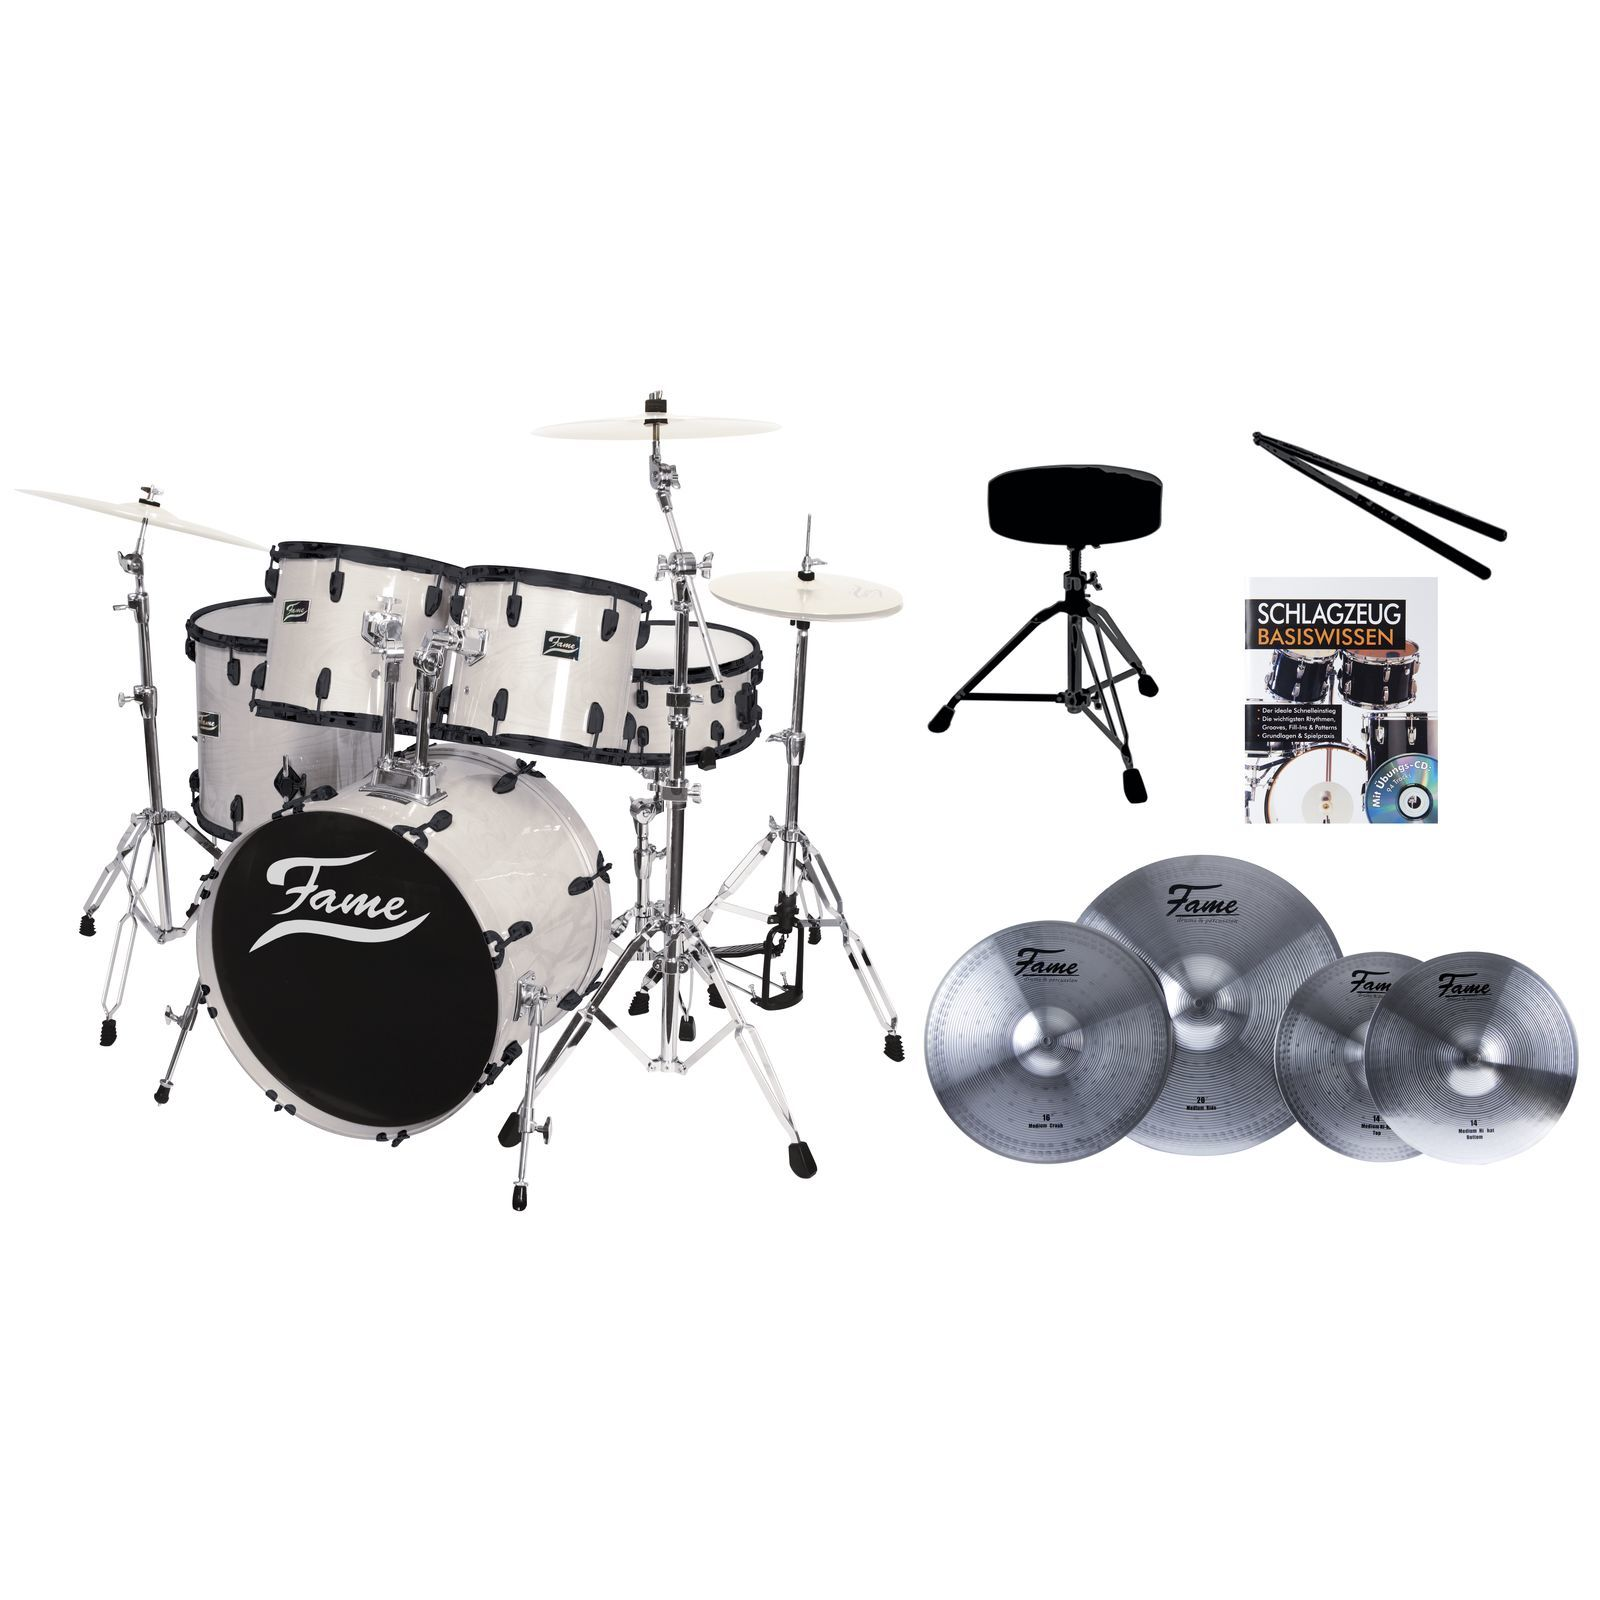 SET FAME Maple Standard White 20, + Reflex Becken, Hocker & Stix Produktbild